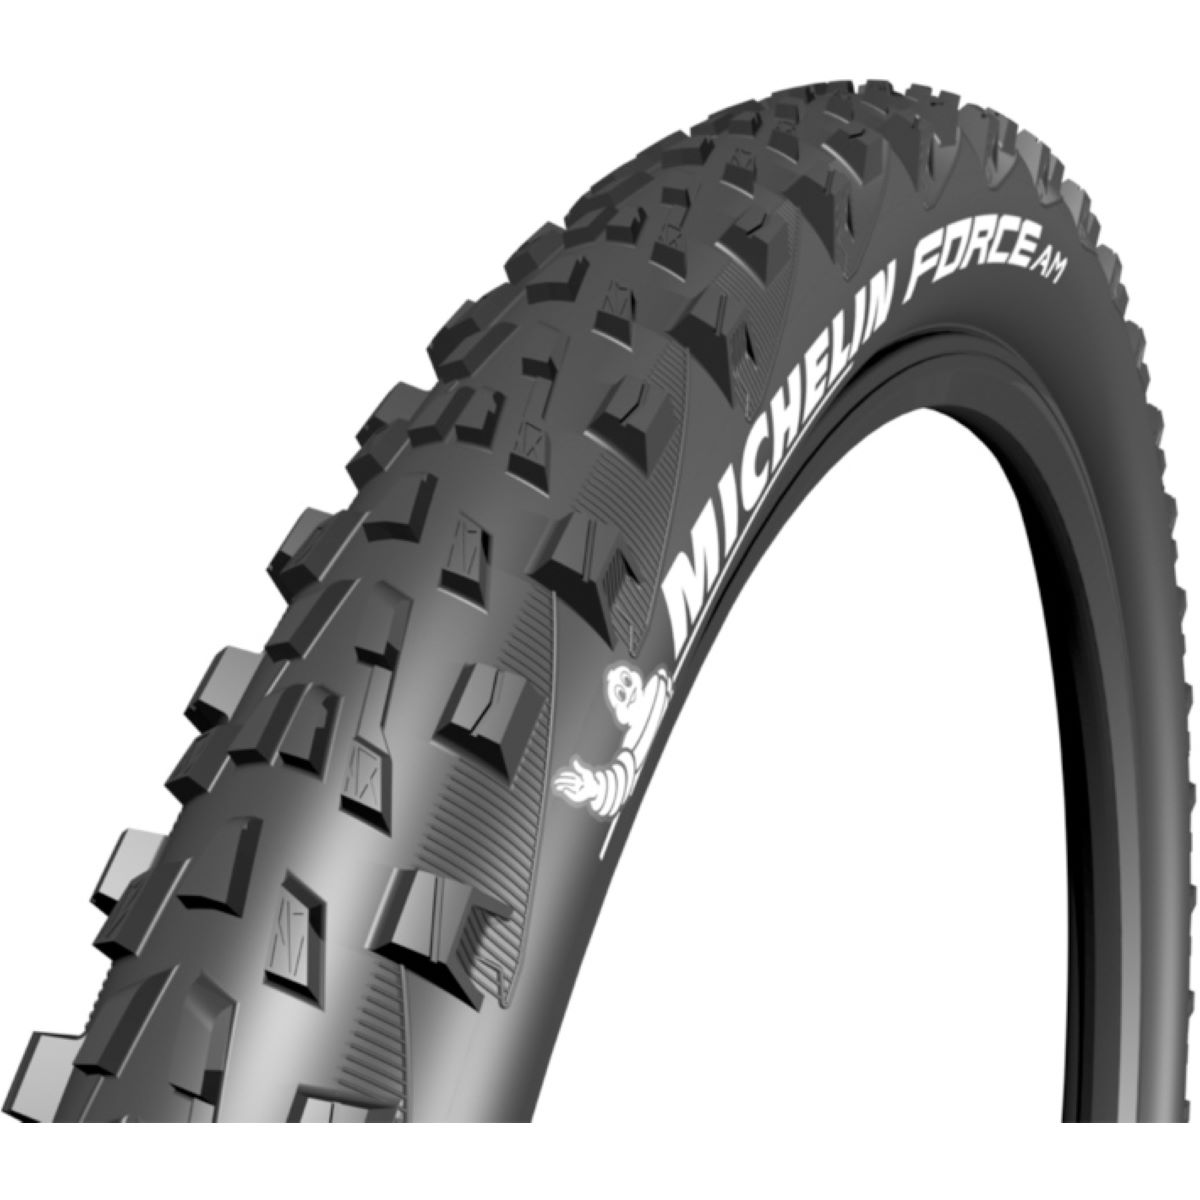 MICHELIN Michelin Force AM Competition MTB Tyre   Tyres